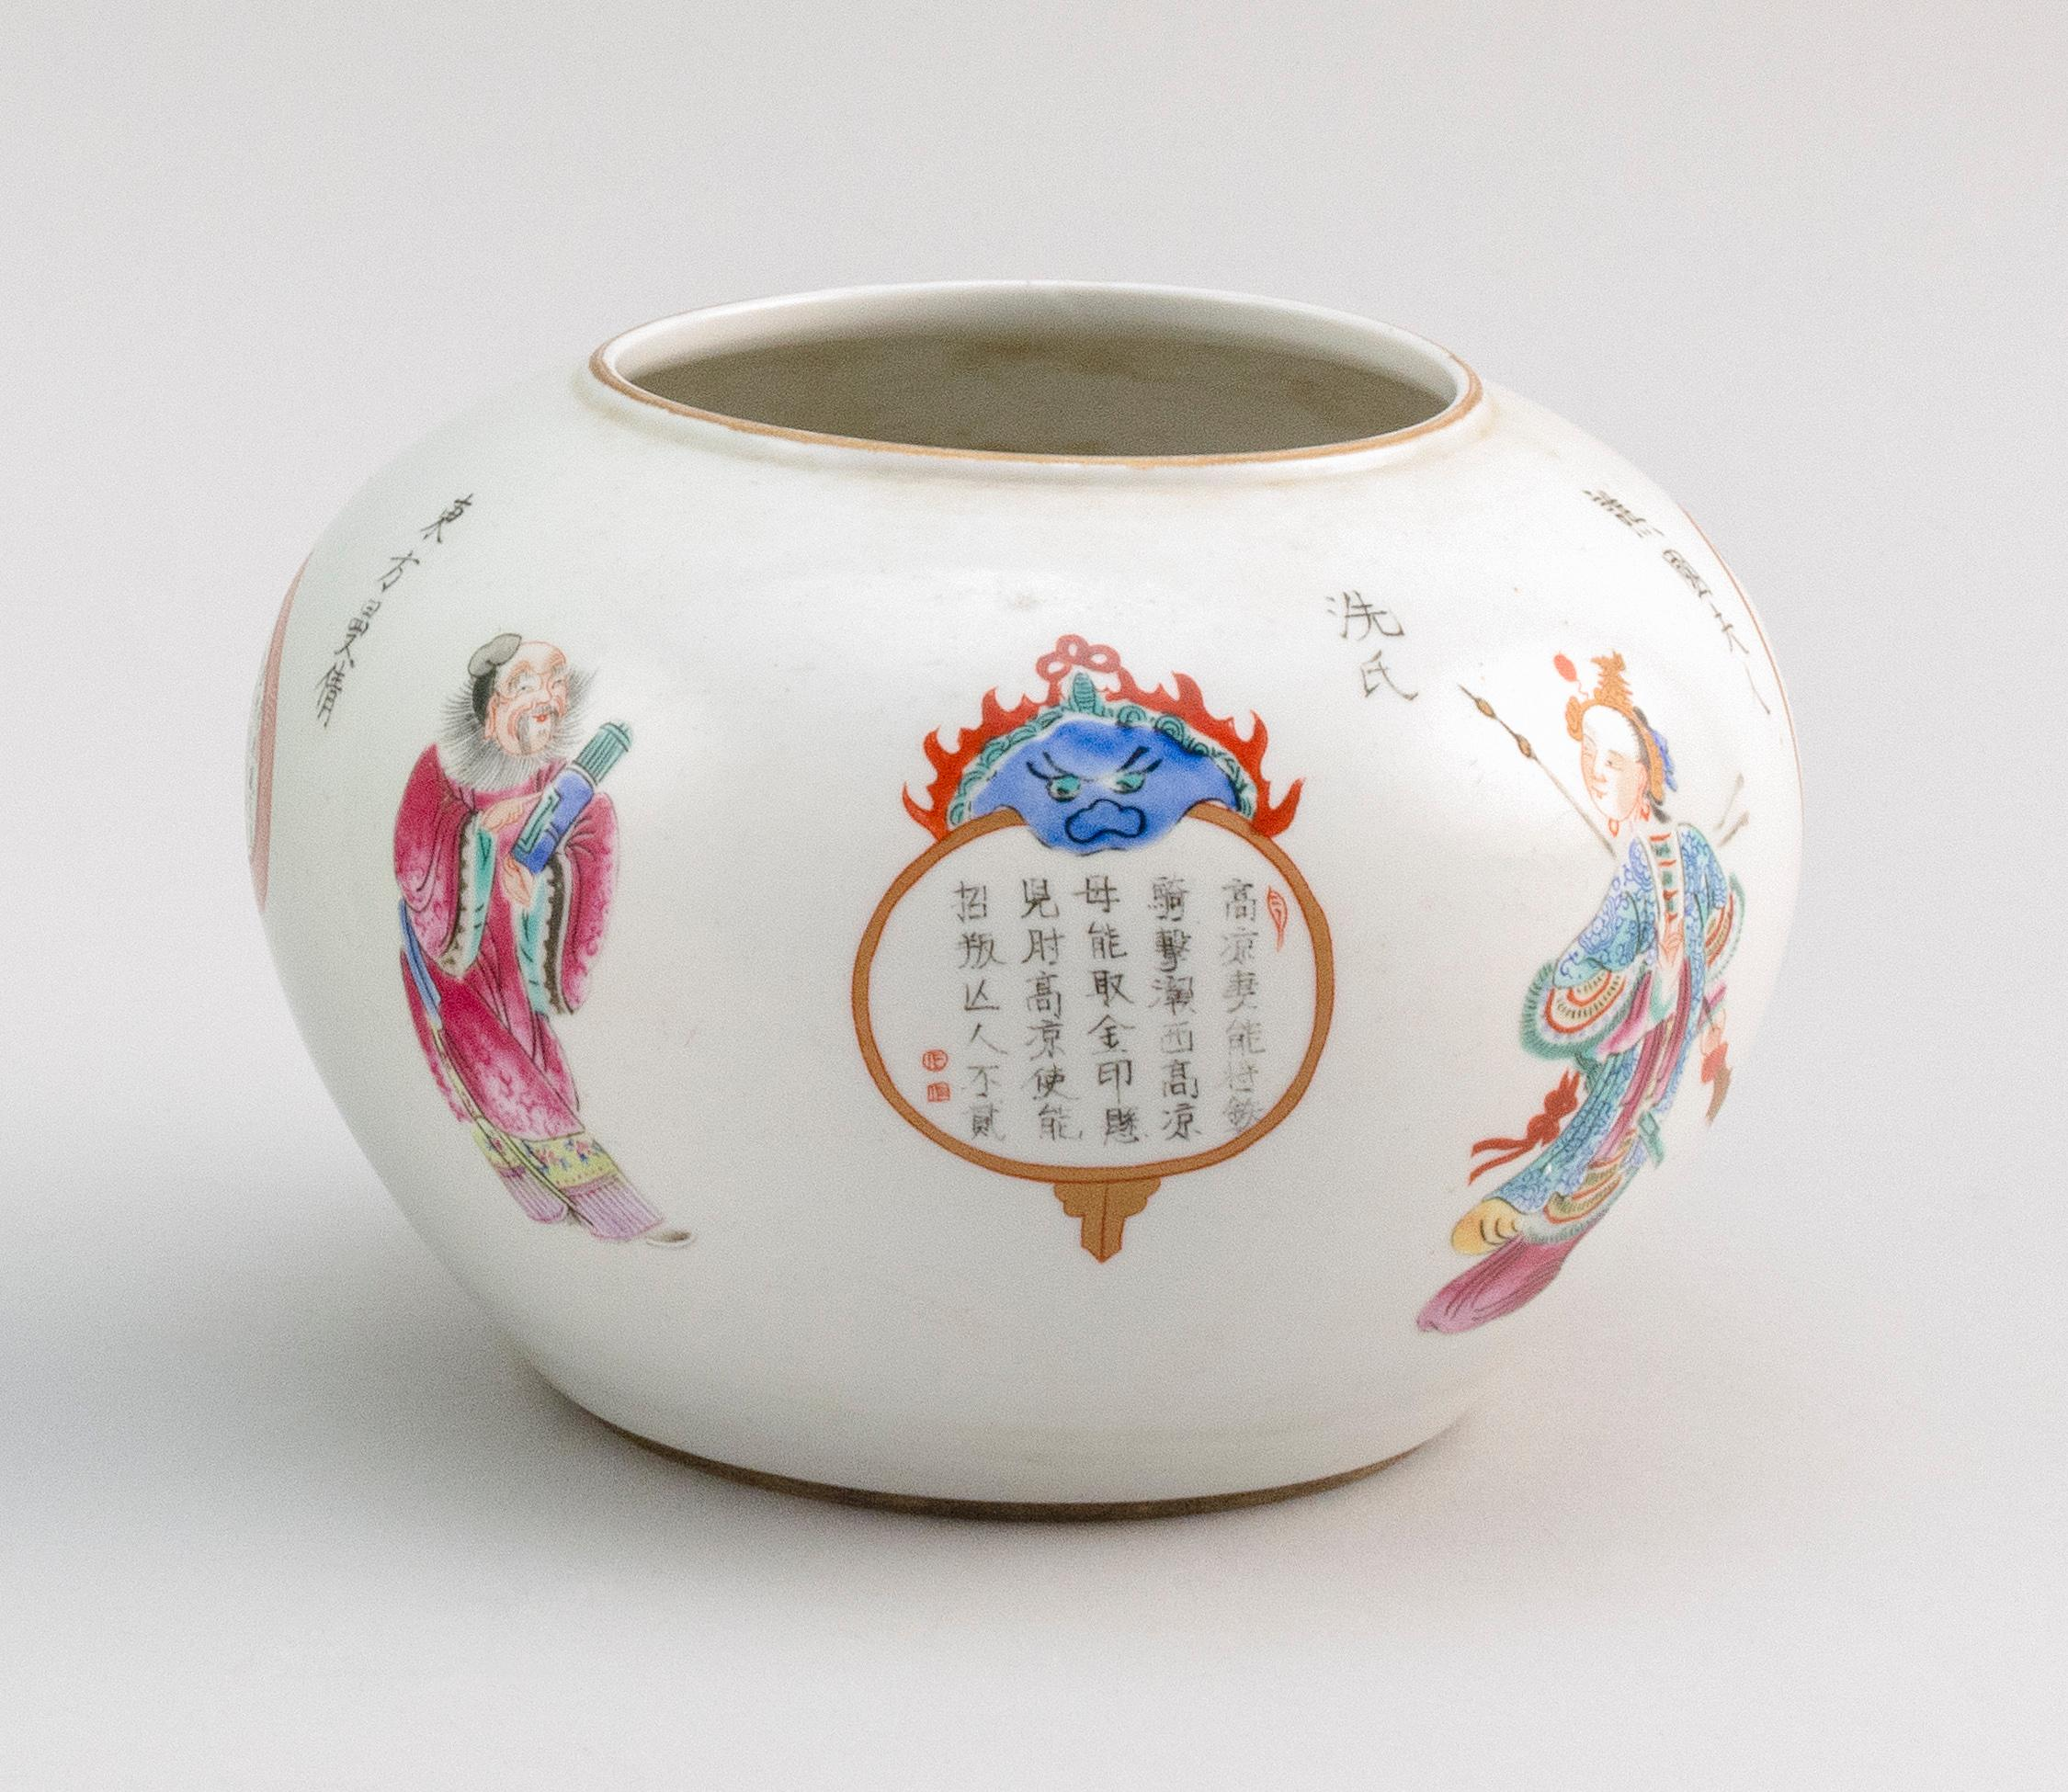 """CHINESE FAMILLE ROSE PORCELAIN BOWL Ovoid, with decoration of Immortals. Six-character Daoguang mark on base. Diameter 6.6""""."""